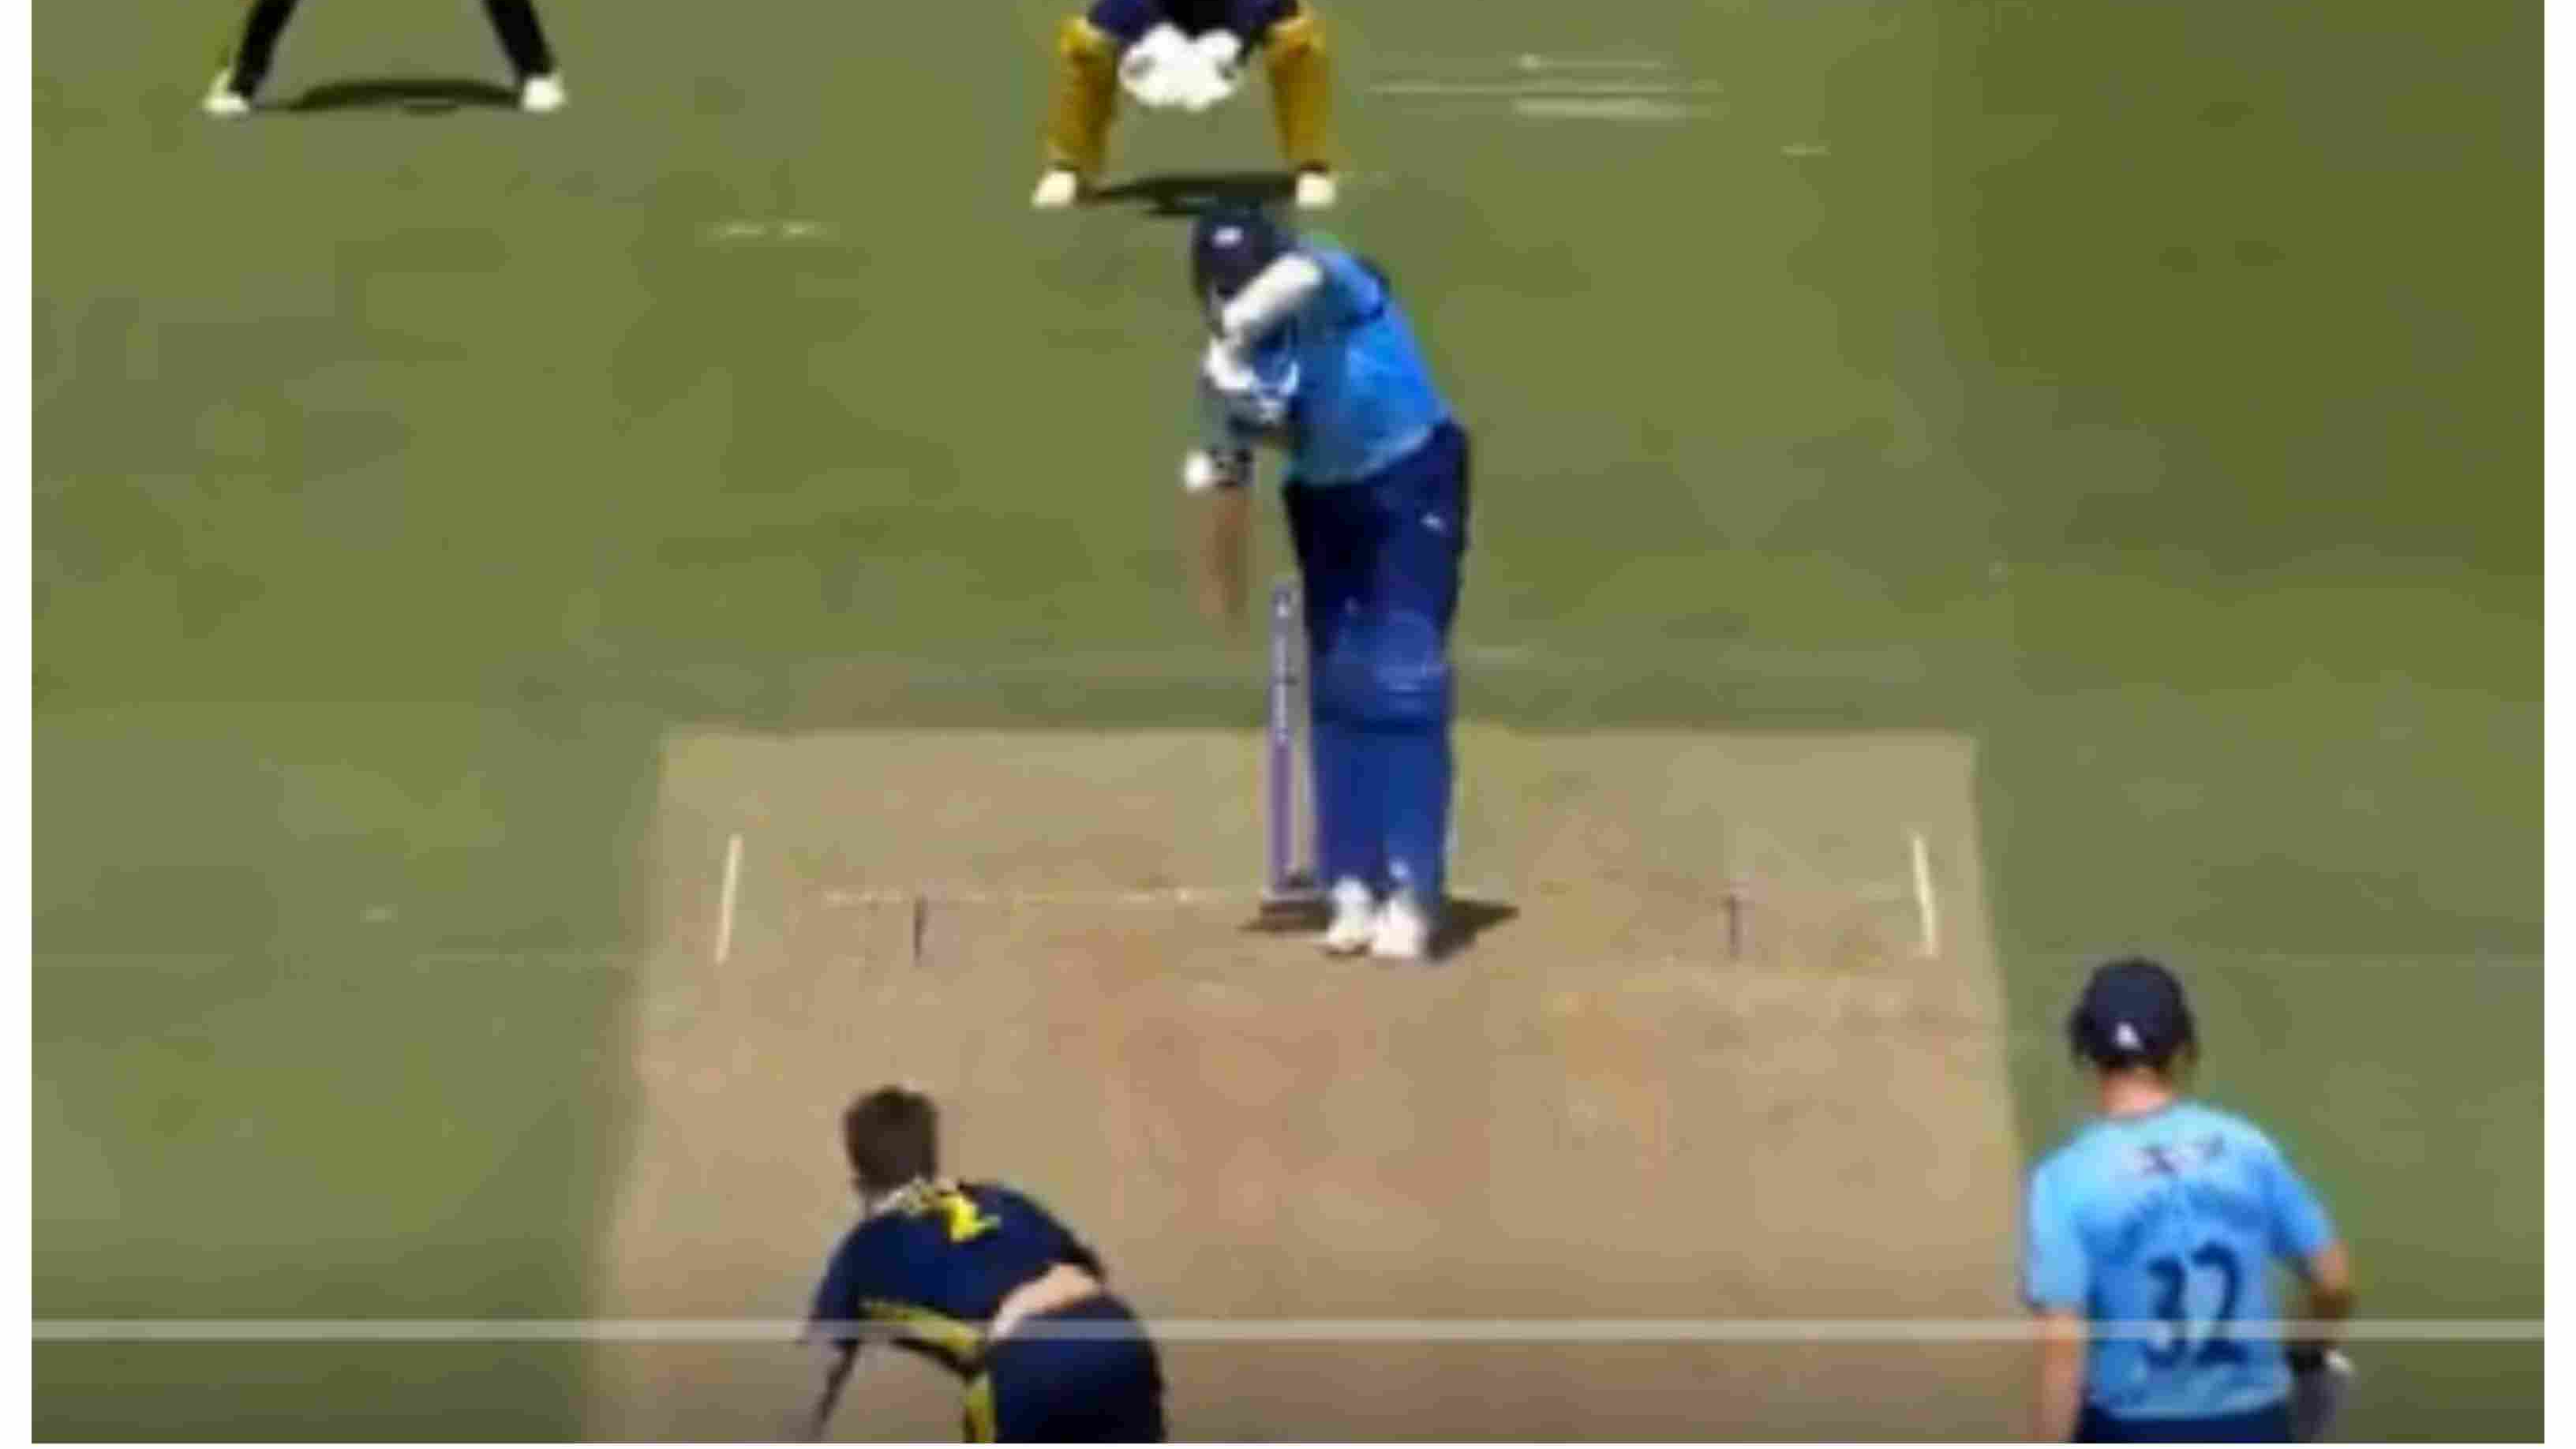 WATCH: Cheteshwar Pujara gets out on duck off Dale Steyn's peach in Royal London One-Day Cup